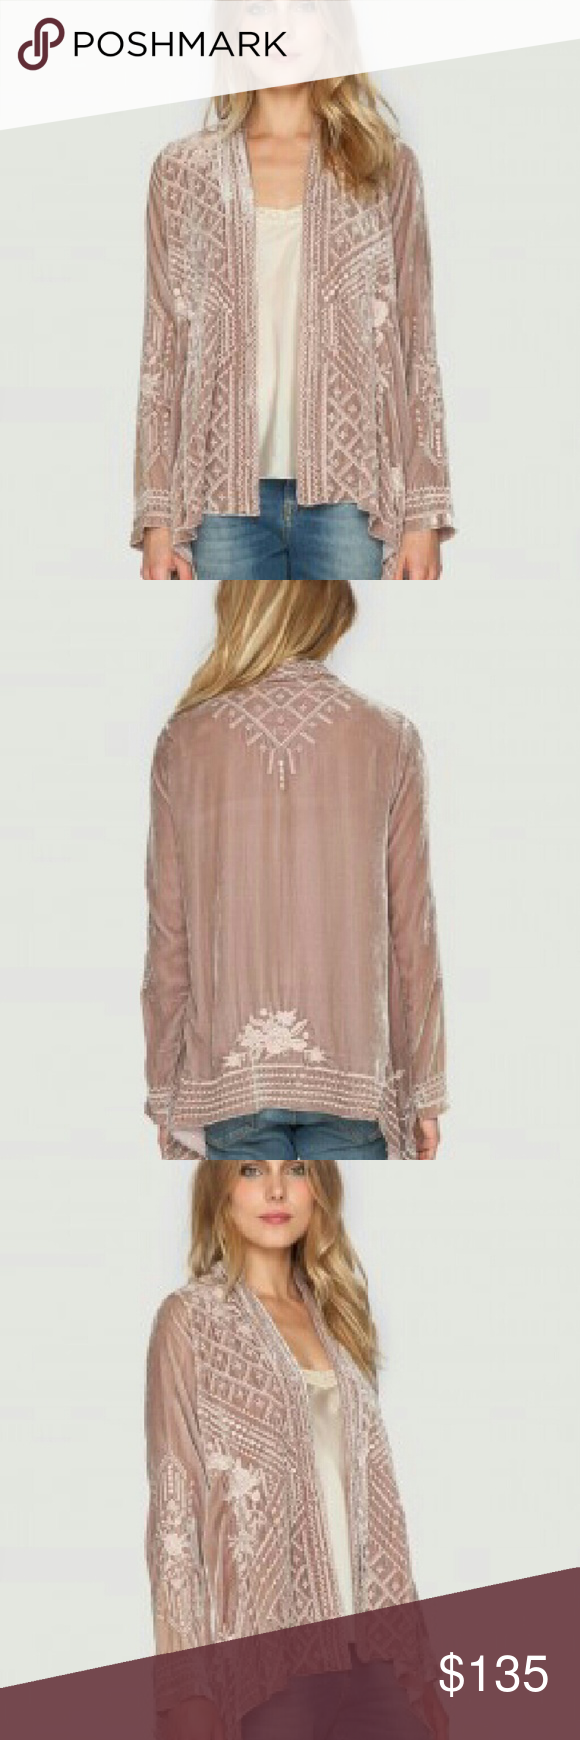 KALYA VELVET DRAPED CARDIGAN The JWLA KALYA VELVET DRAPED CARDIGAN is the perfect boho jacket for Fall! This cardigan jacket is cut for a draped fit in luxurious velvet and adorned by a vintage-inspired tonal embroidery design.?In mint condition. Johnny Was Jackets & Coats Jean Jackets